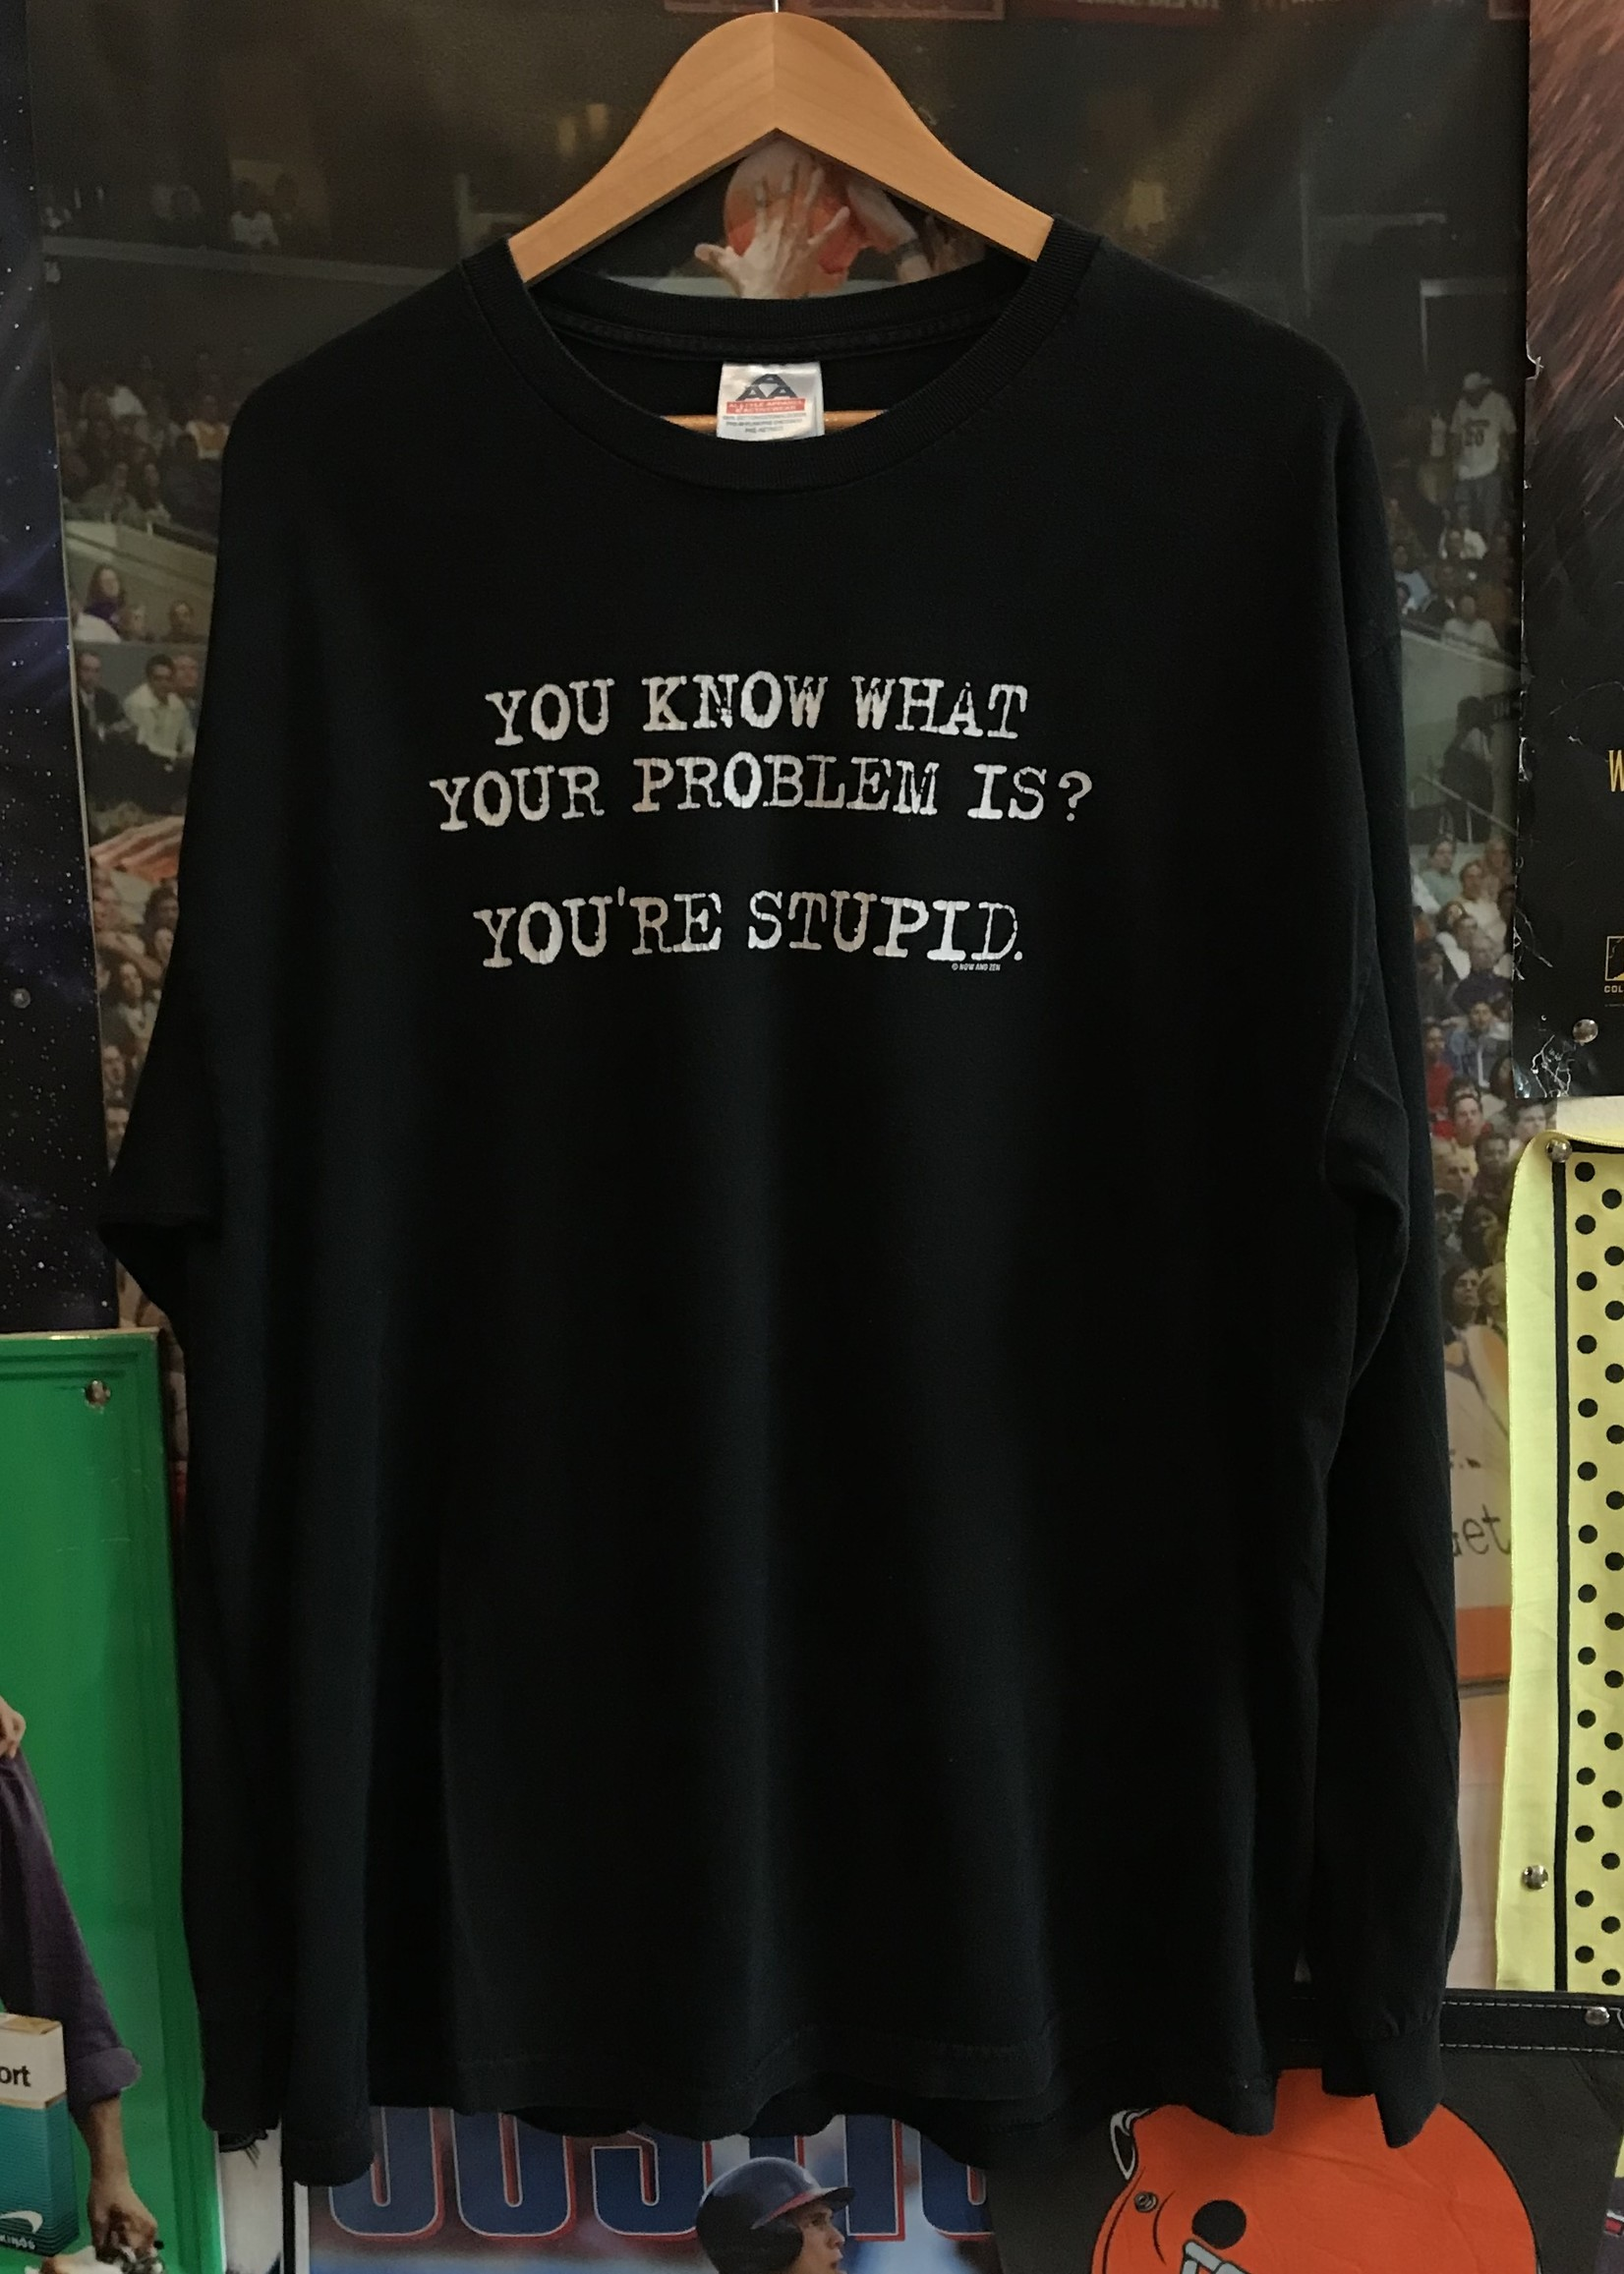 4502you know what your problem is tee sz. XL